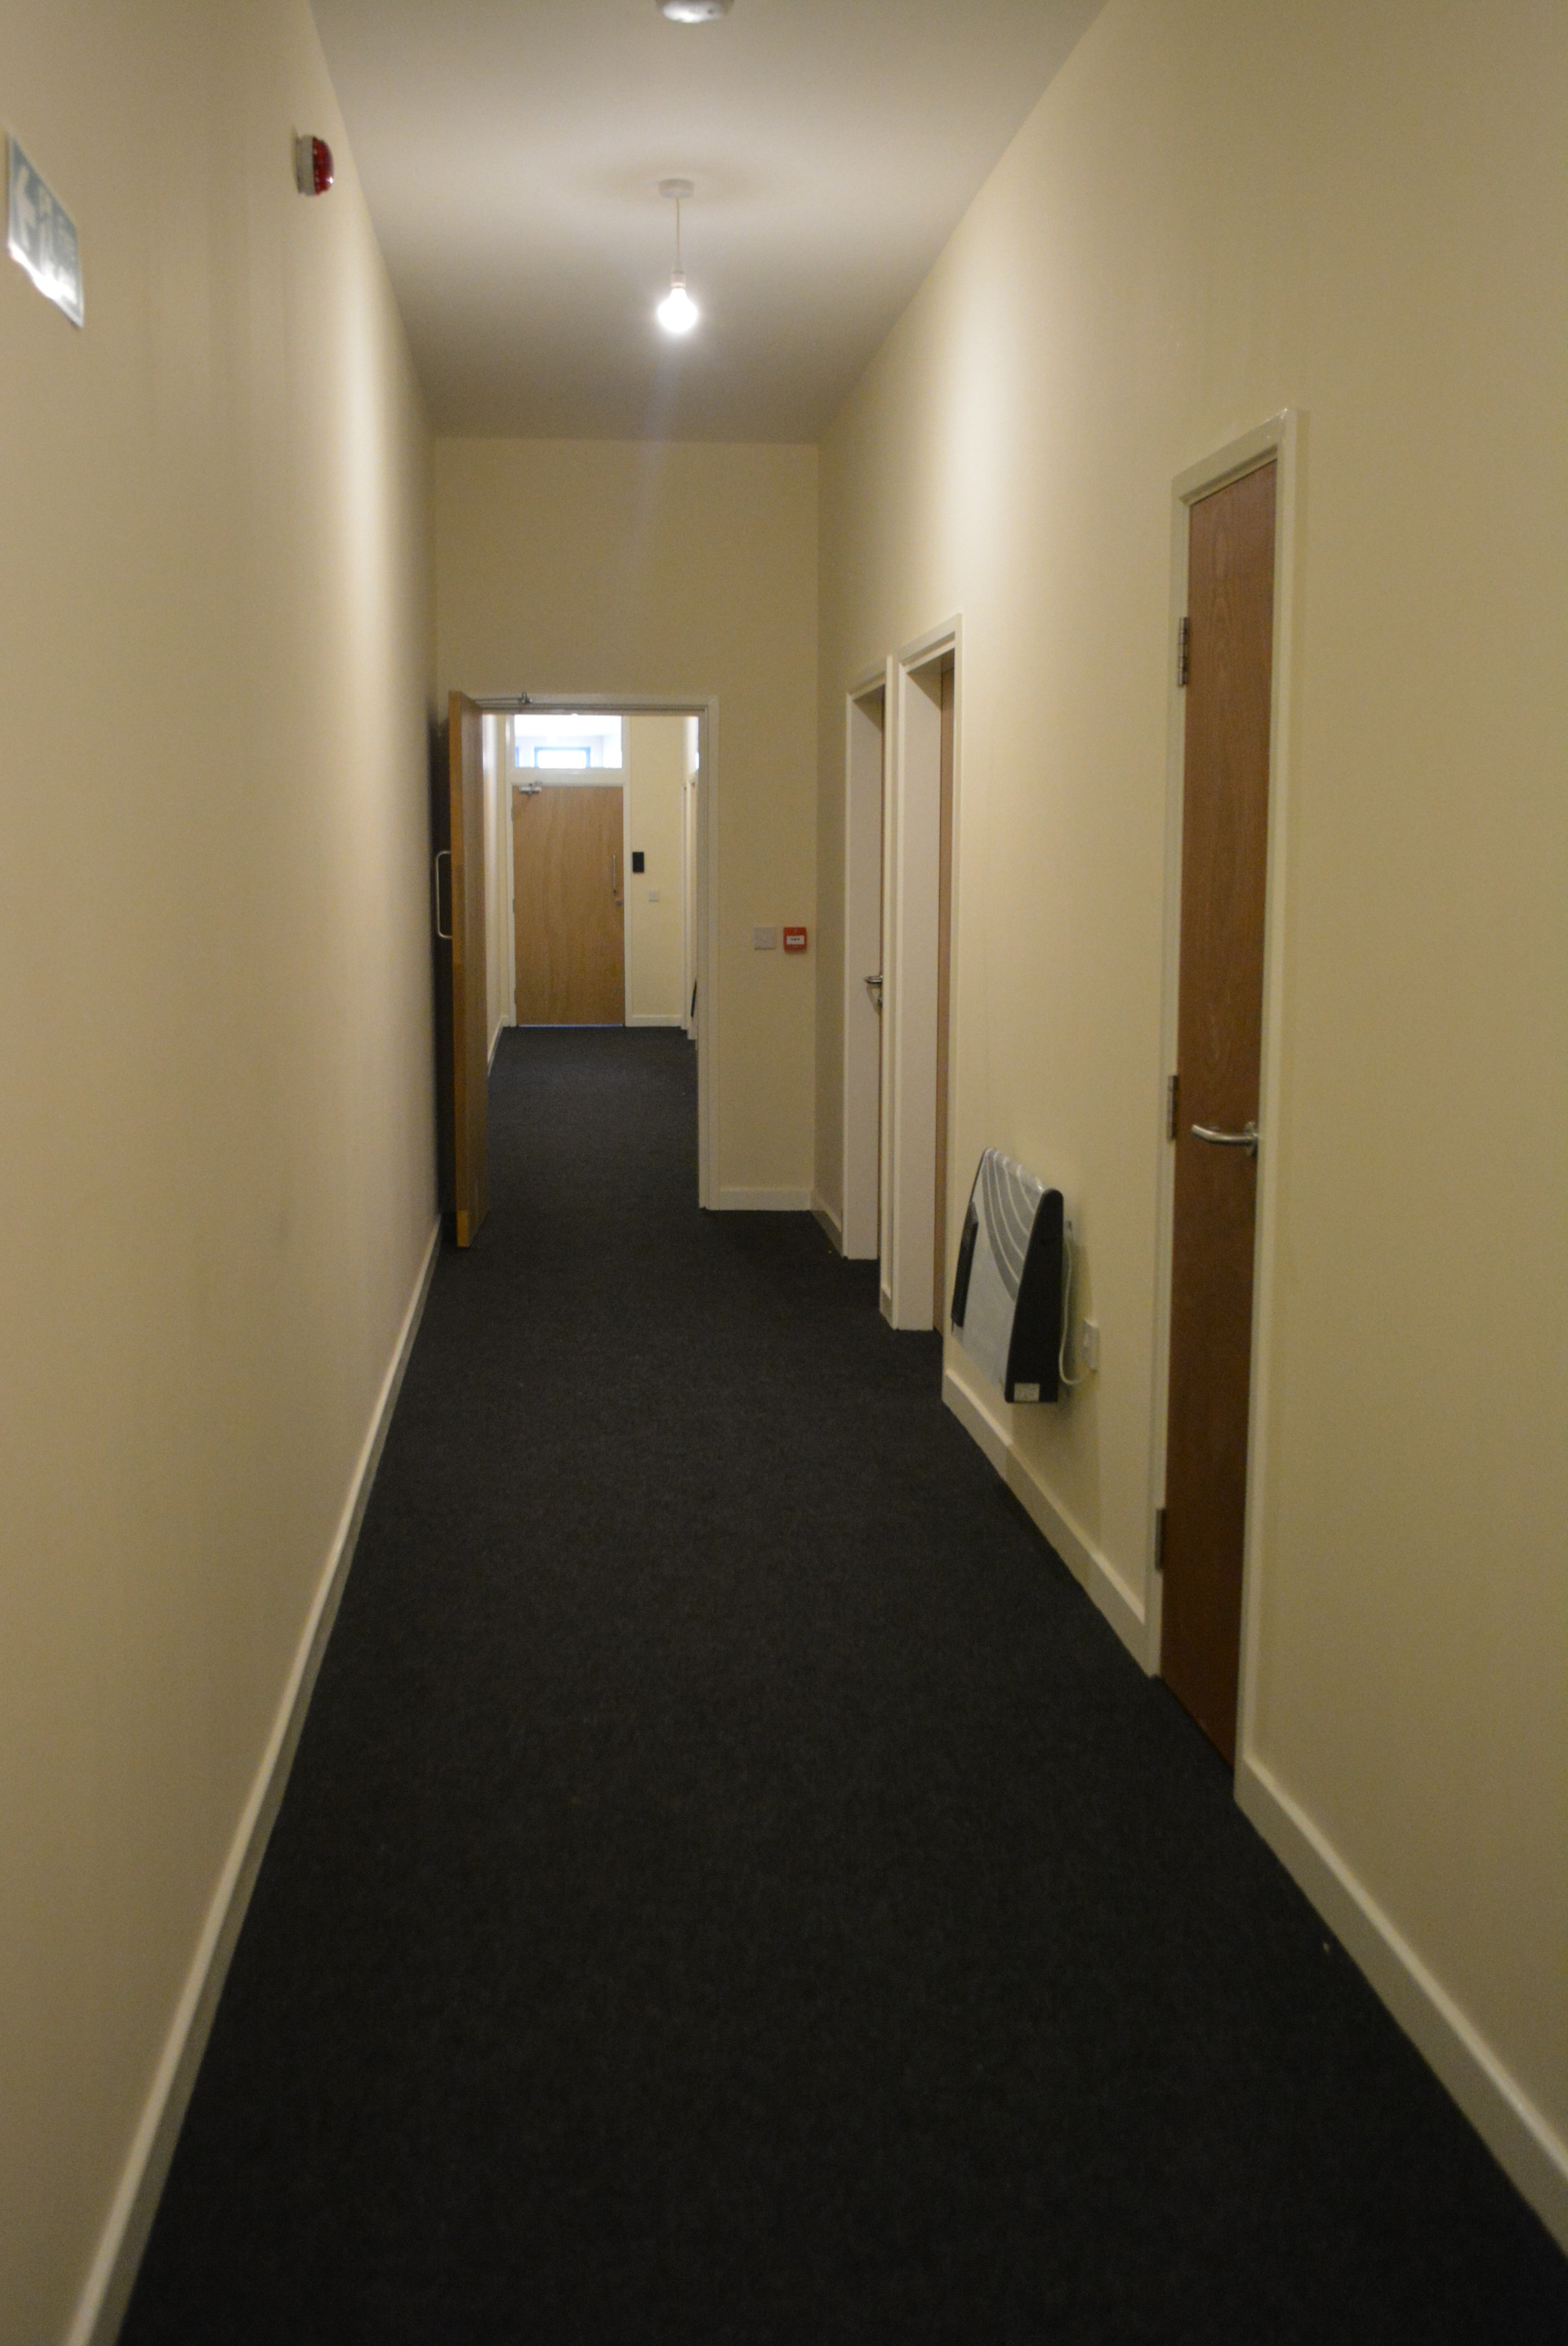 Flat 3 St Silas Apartments - 10 Bed Student Accommodation- Sheff